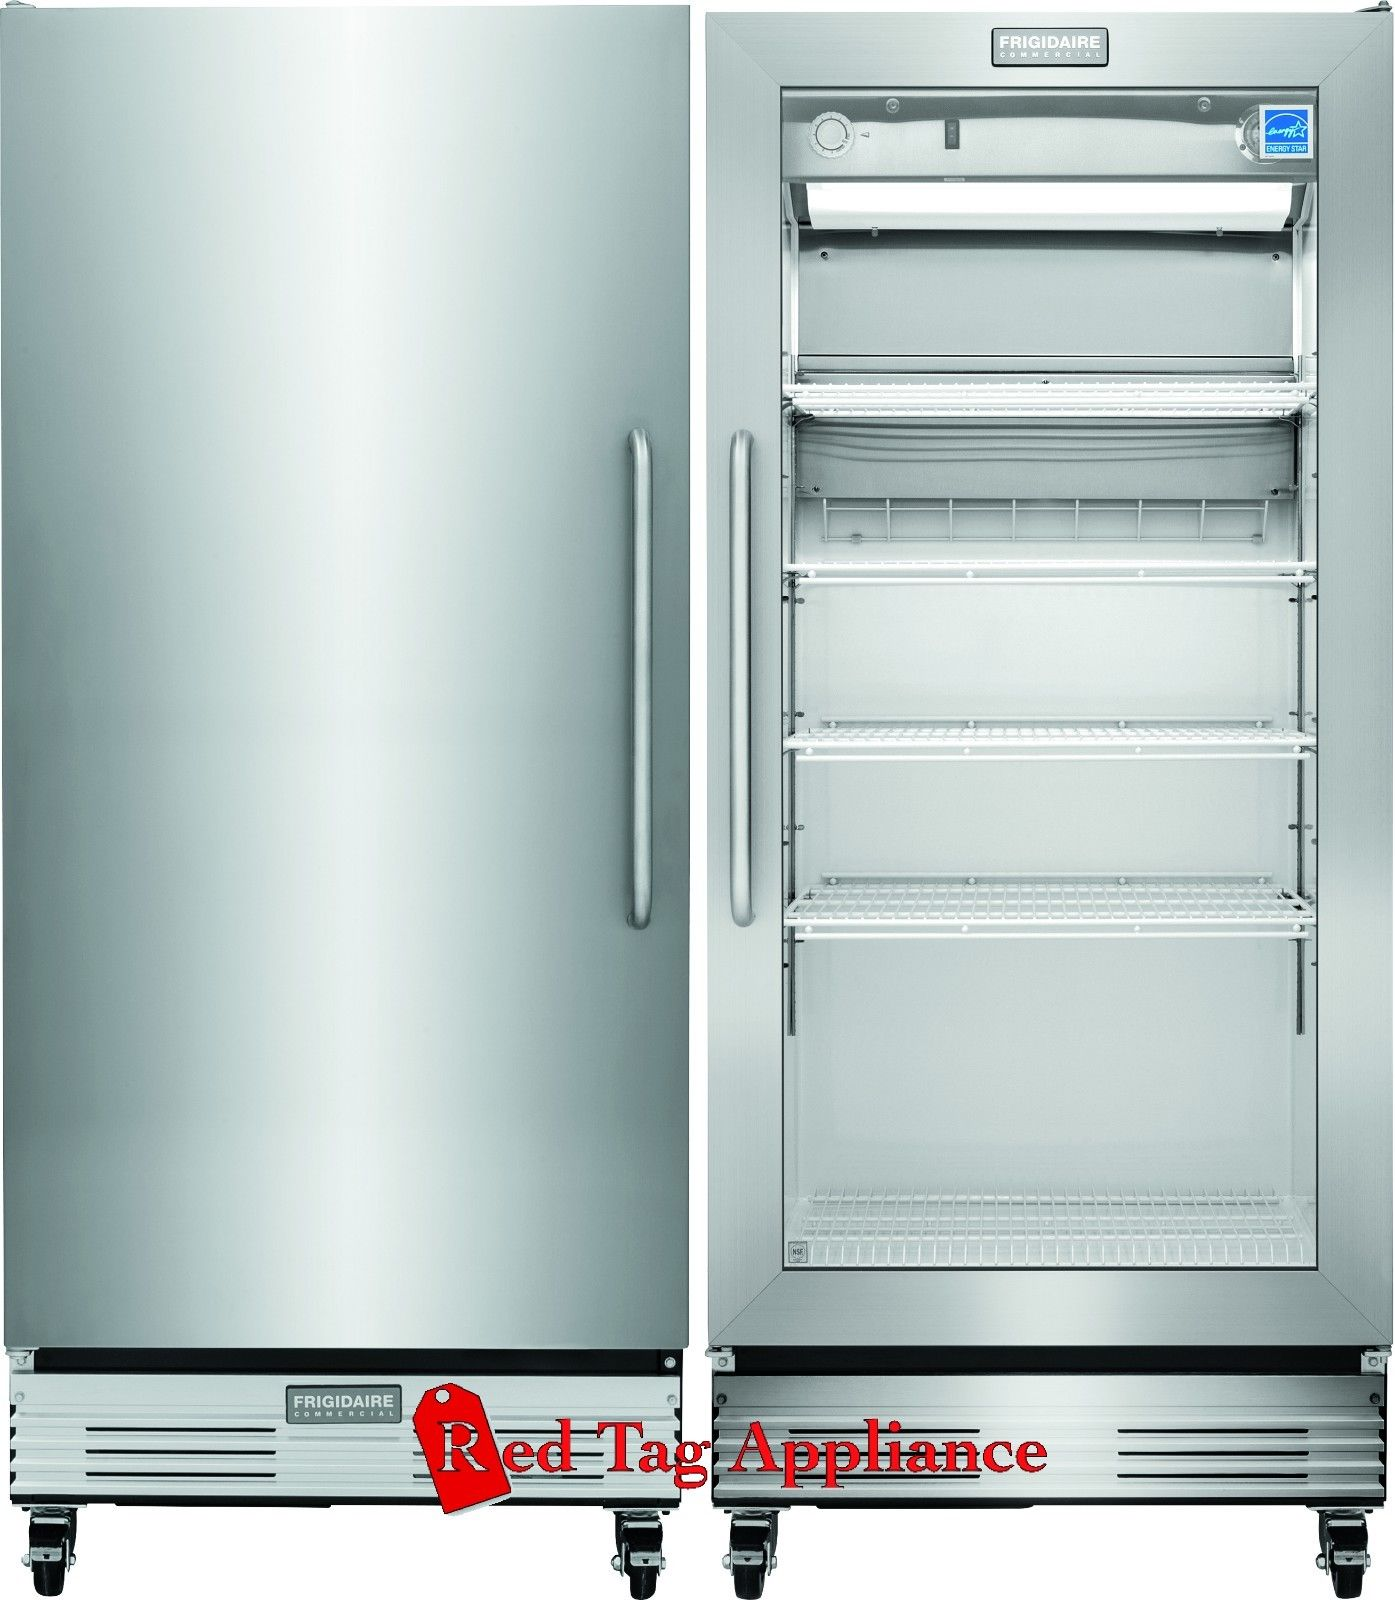 New frigidaire commercial nsf food grade glass door refrigerator freezer combo - Glass door refrigerator freezer ...